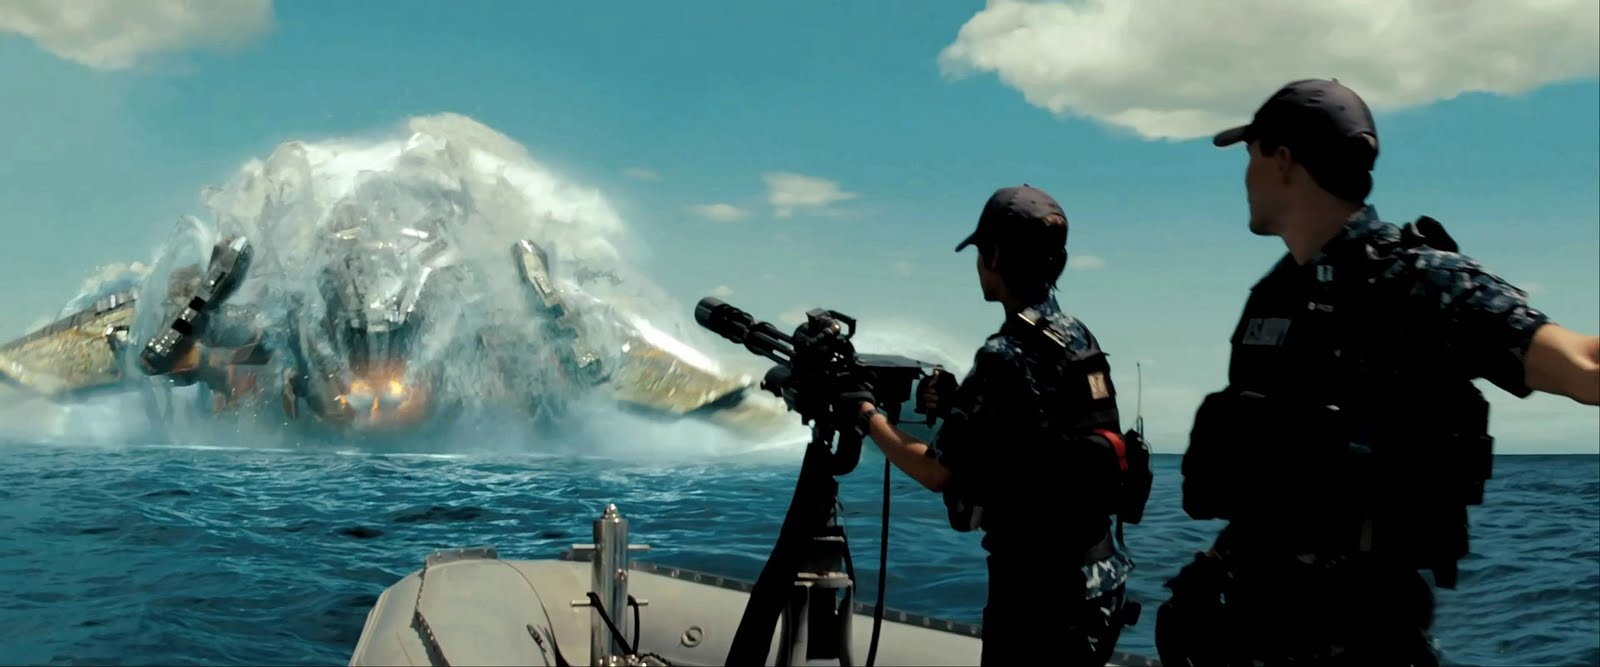 Battleship 2012 Poster HD Wallpapers ~ Movie Wallpapers2012 Movie Wallpaper